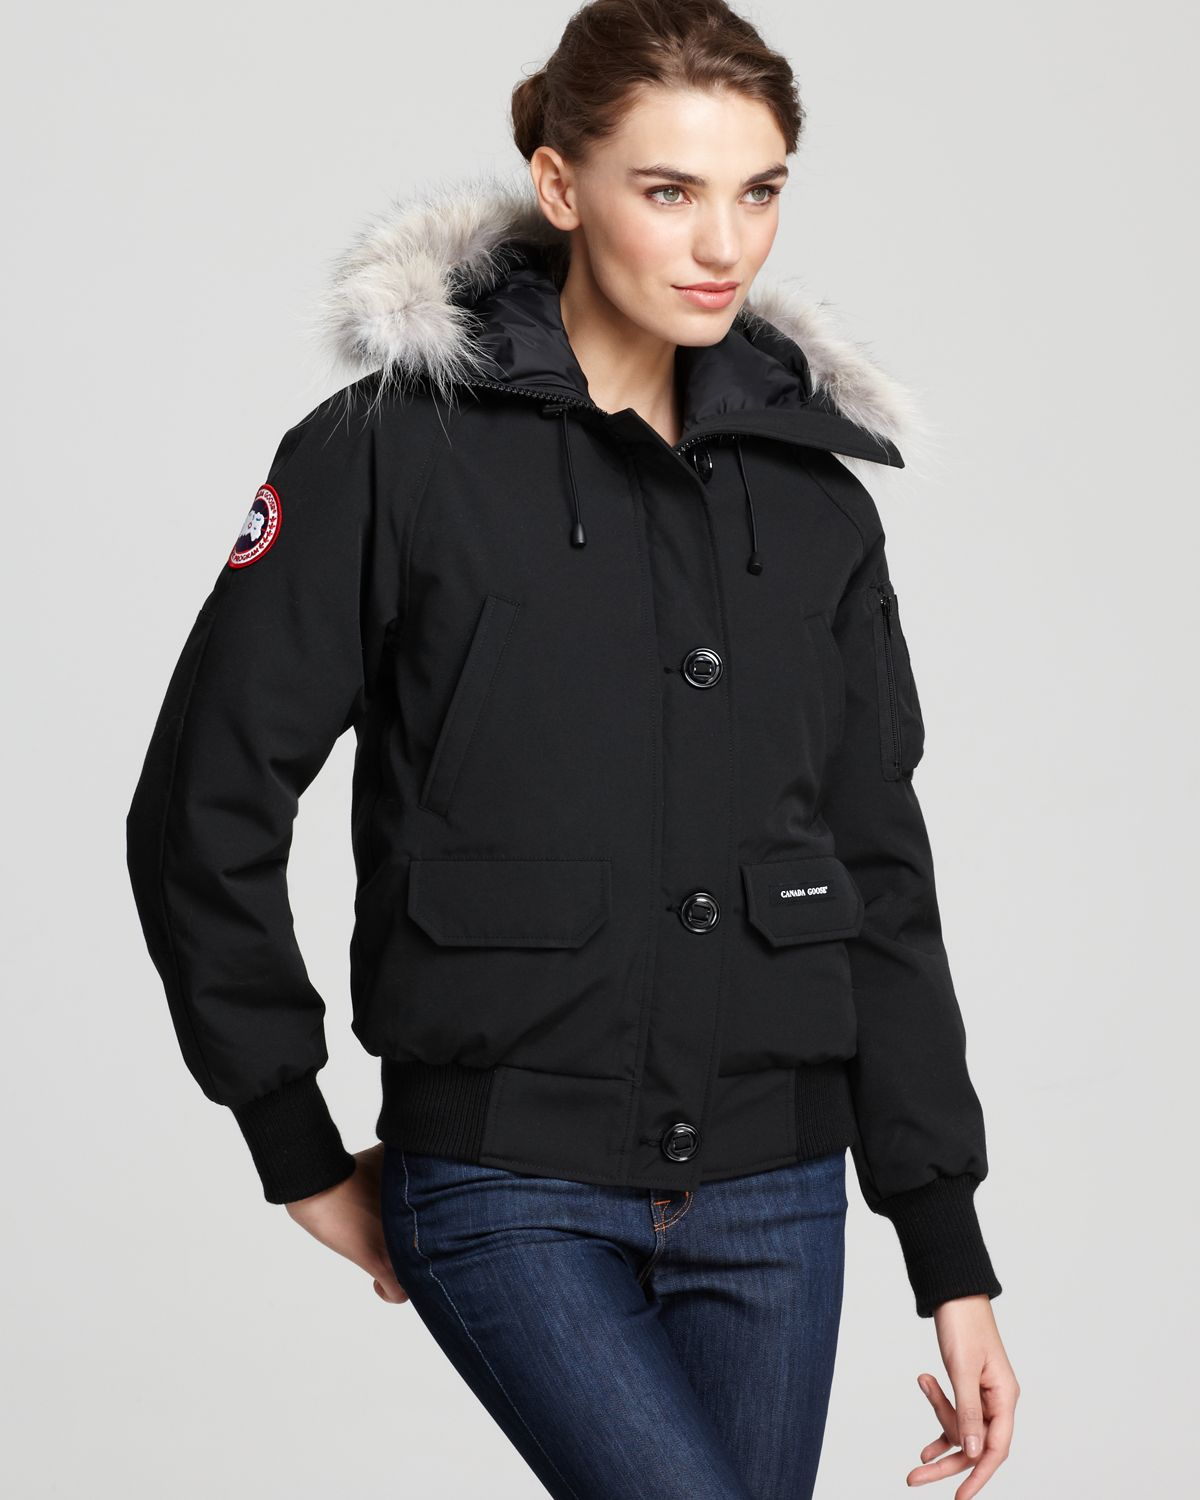 Canada Goose produces extreme weather outerwear since Discover high quality jackets, parkas and accessories designed for women, men and kids. Canada Goose Canada Goose. Free shipping and returns on all orders. Details. Free shipping and returns on all orders. Camp Hooded Jacket.